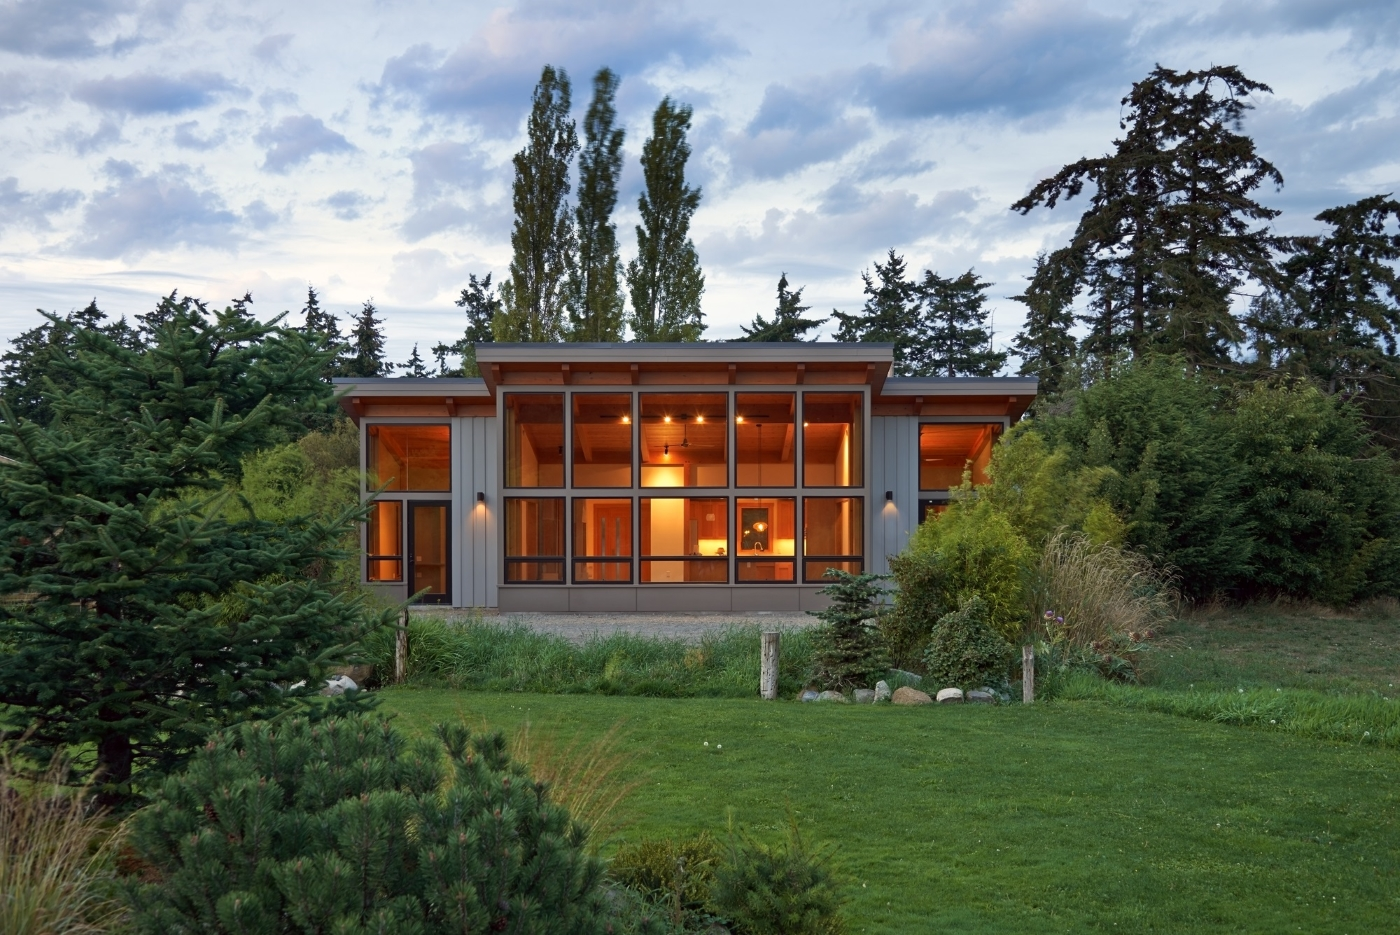 Plush Data Architecture Fine Line Homes Pricing Fine Line Homes Nh This Seattle Local Business News houzz 01 Fine Line Homes